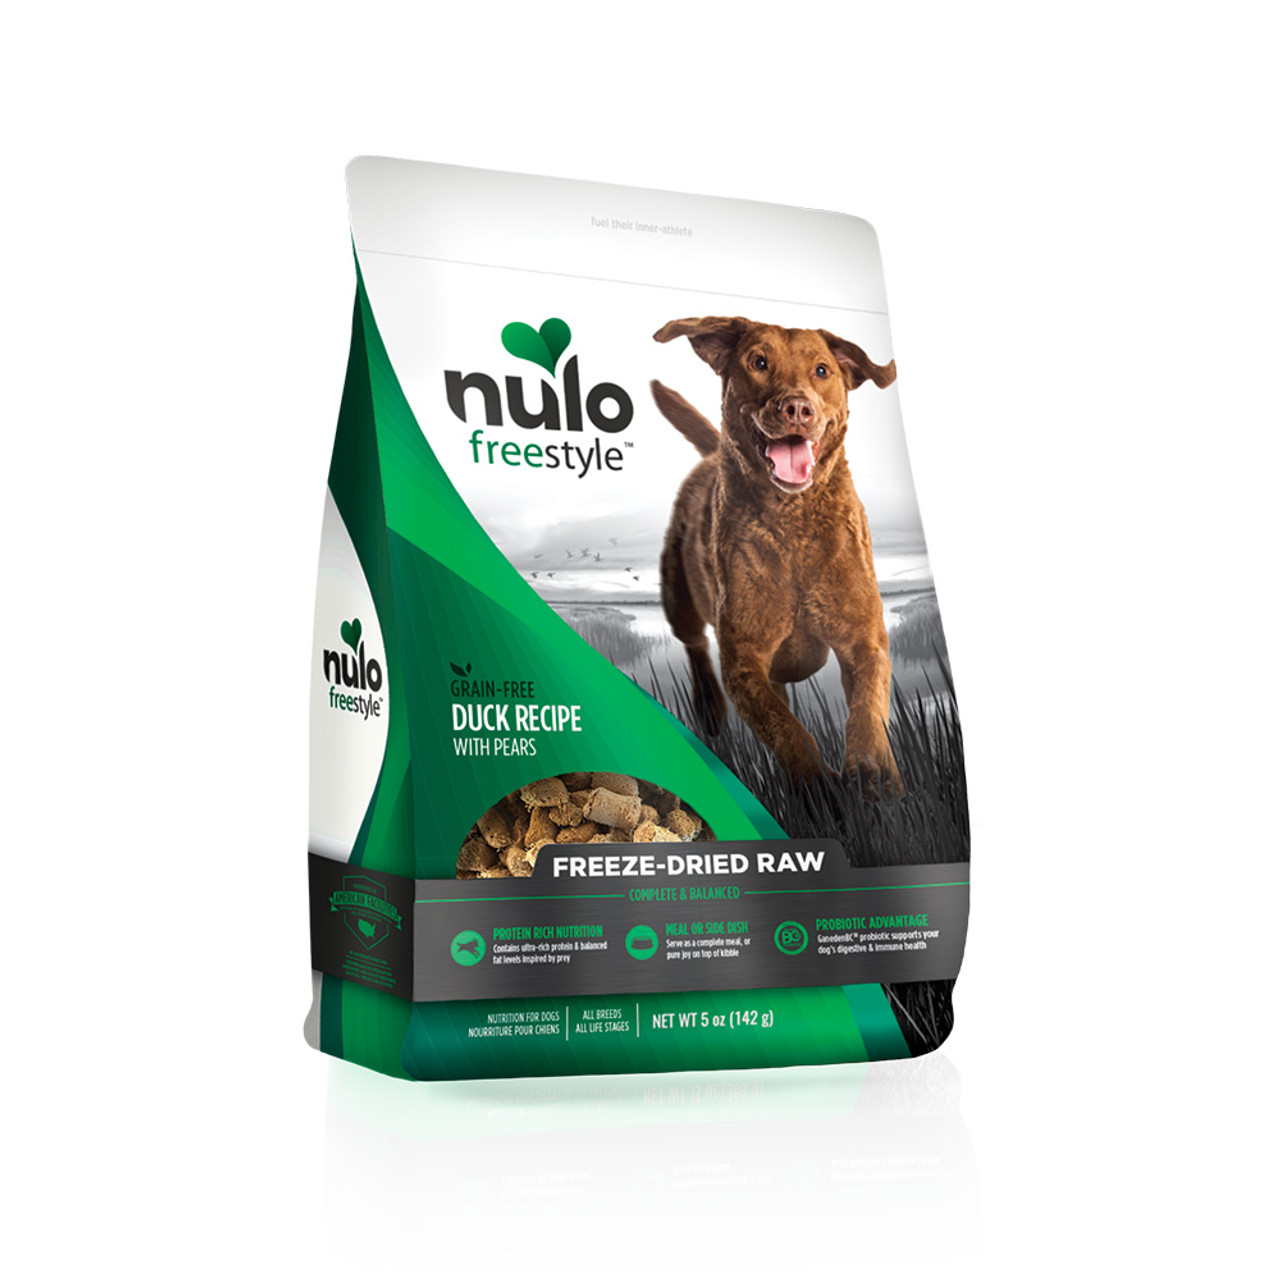 Nulo Freestyle Freeze-Dried Raw Duck Recipe with Pears Dog Food